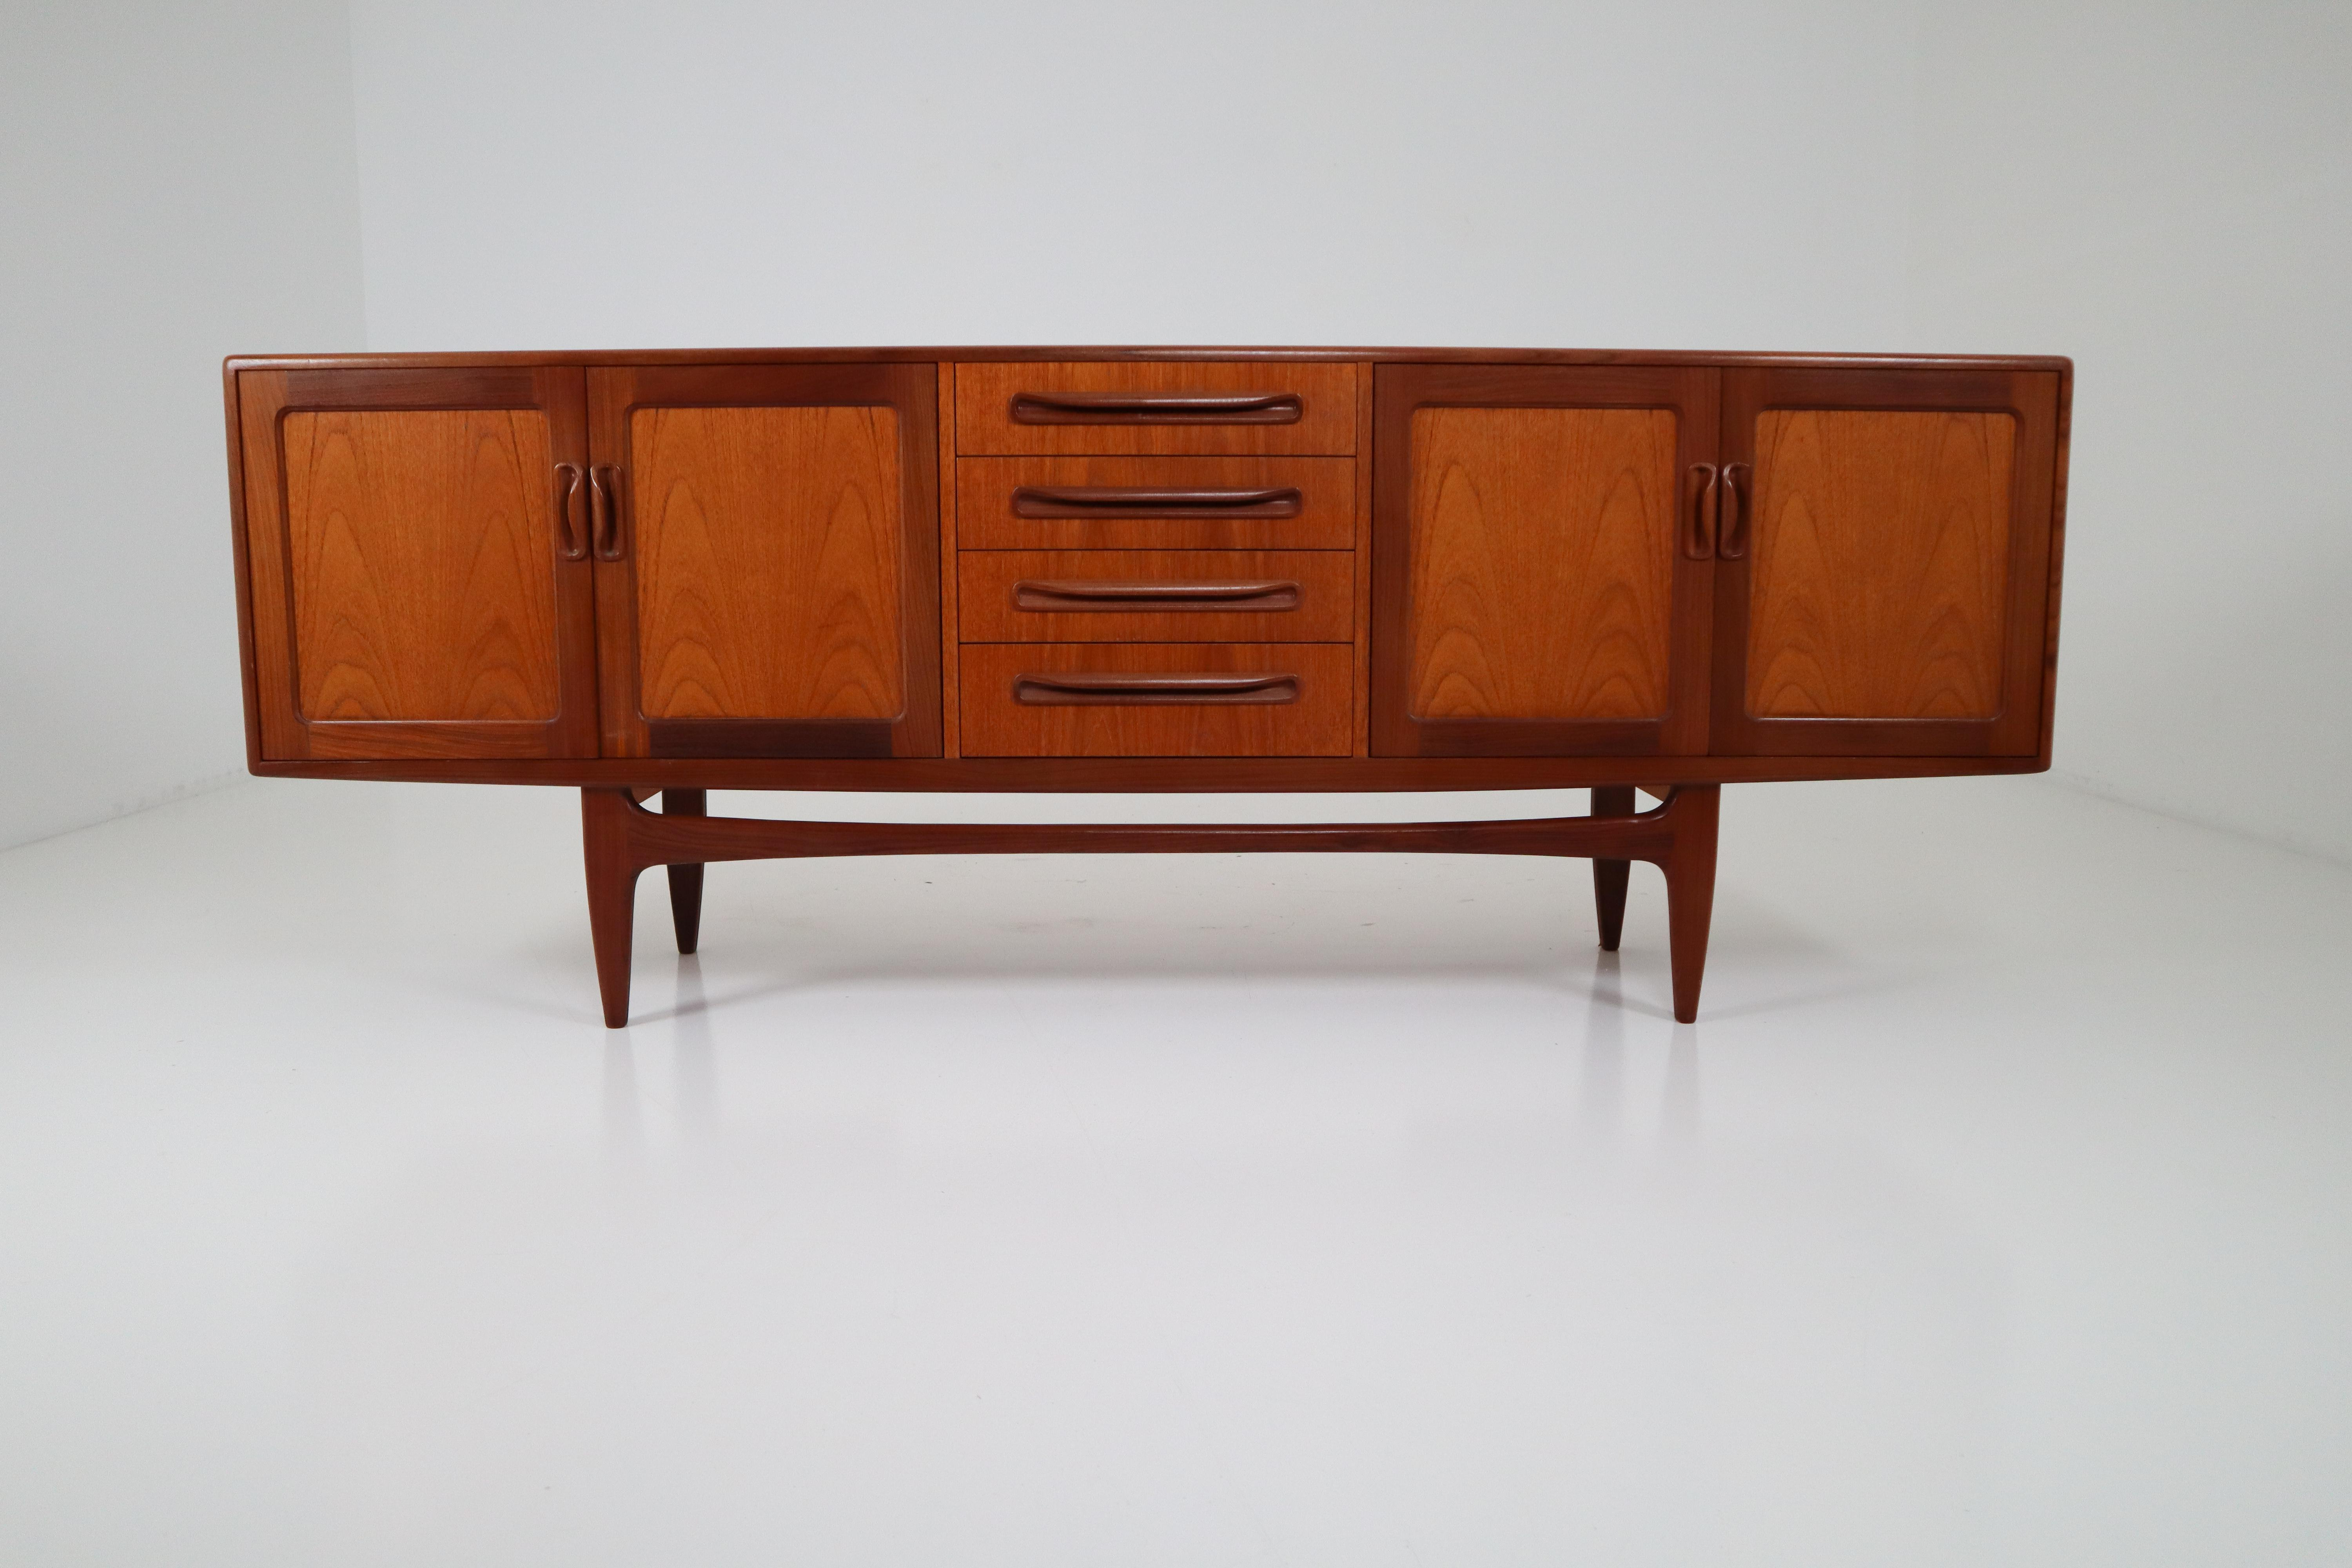 Well Liked Mid Century Modern Teak Credenza Or Sideboardkofod Larsen Within 4 Door Wood Squares Sideboards (View 20 of 20)